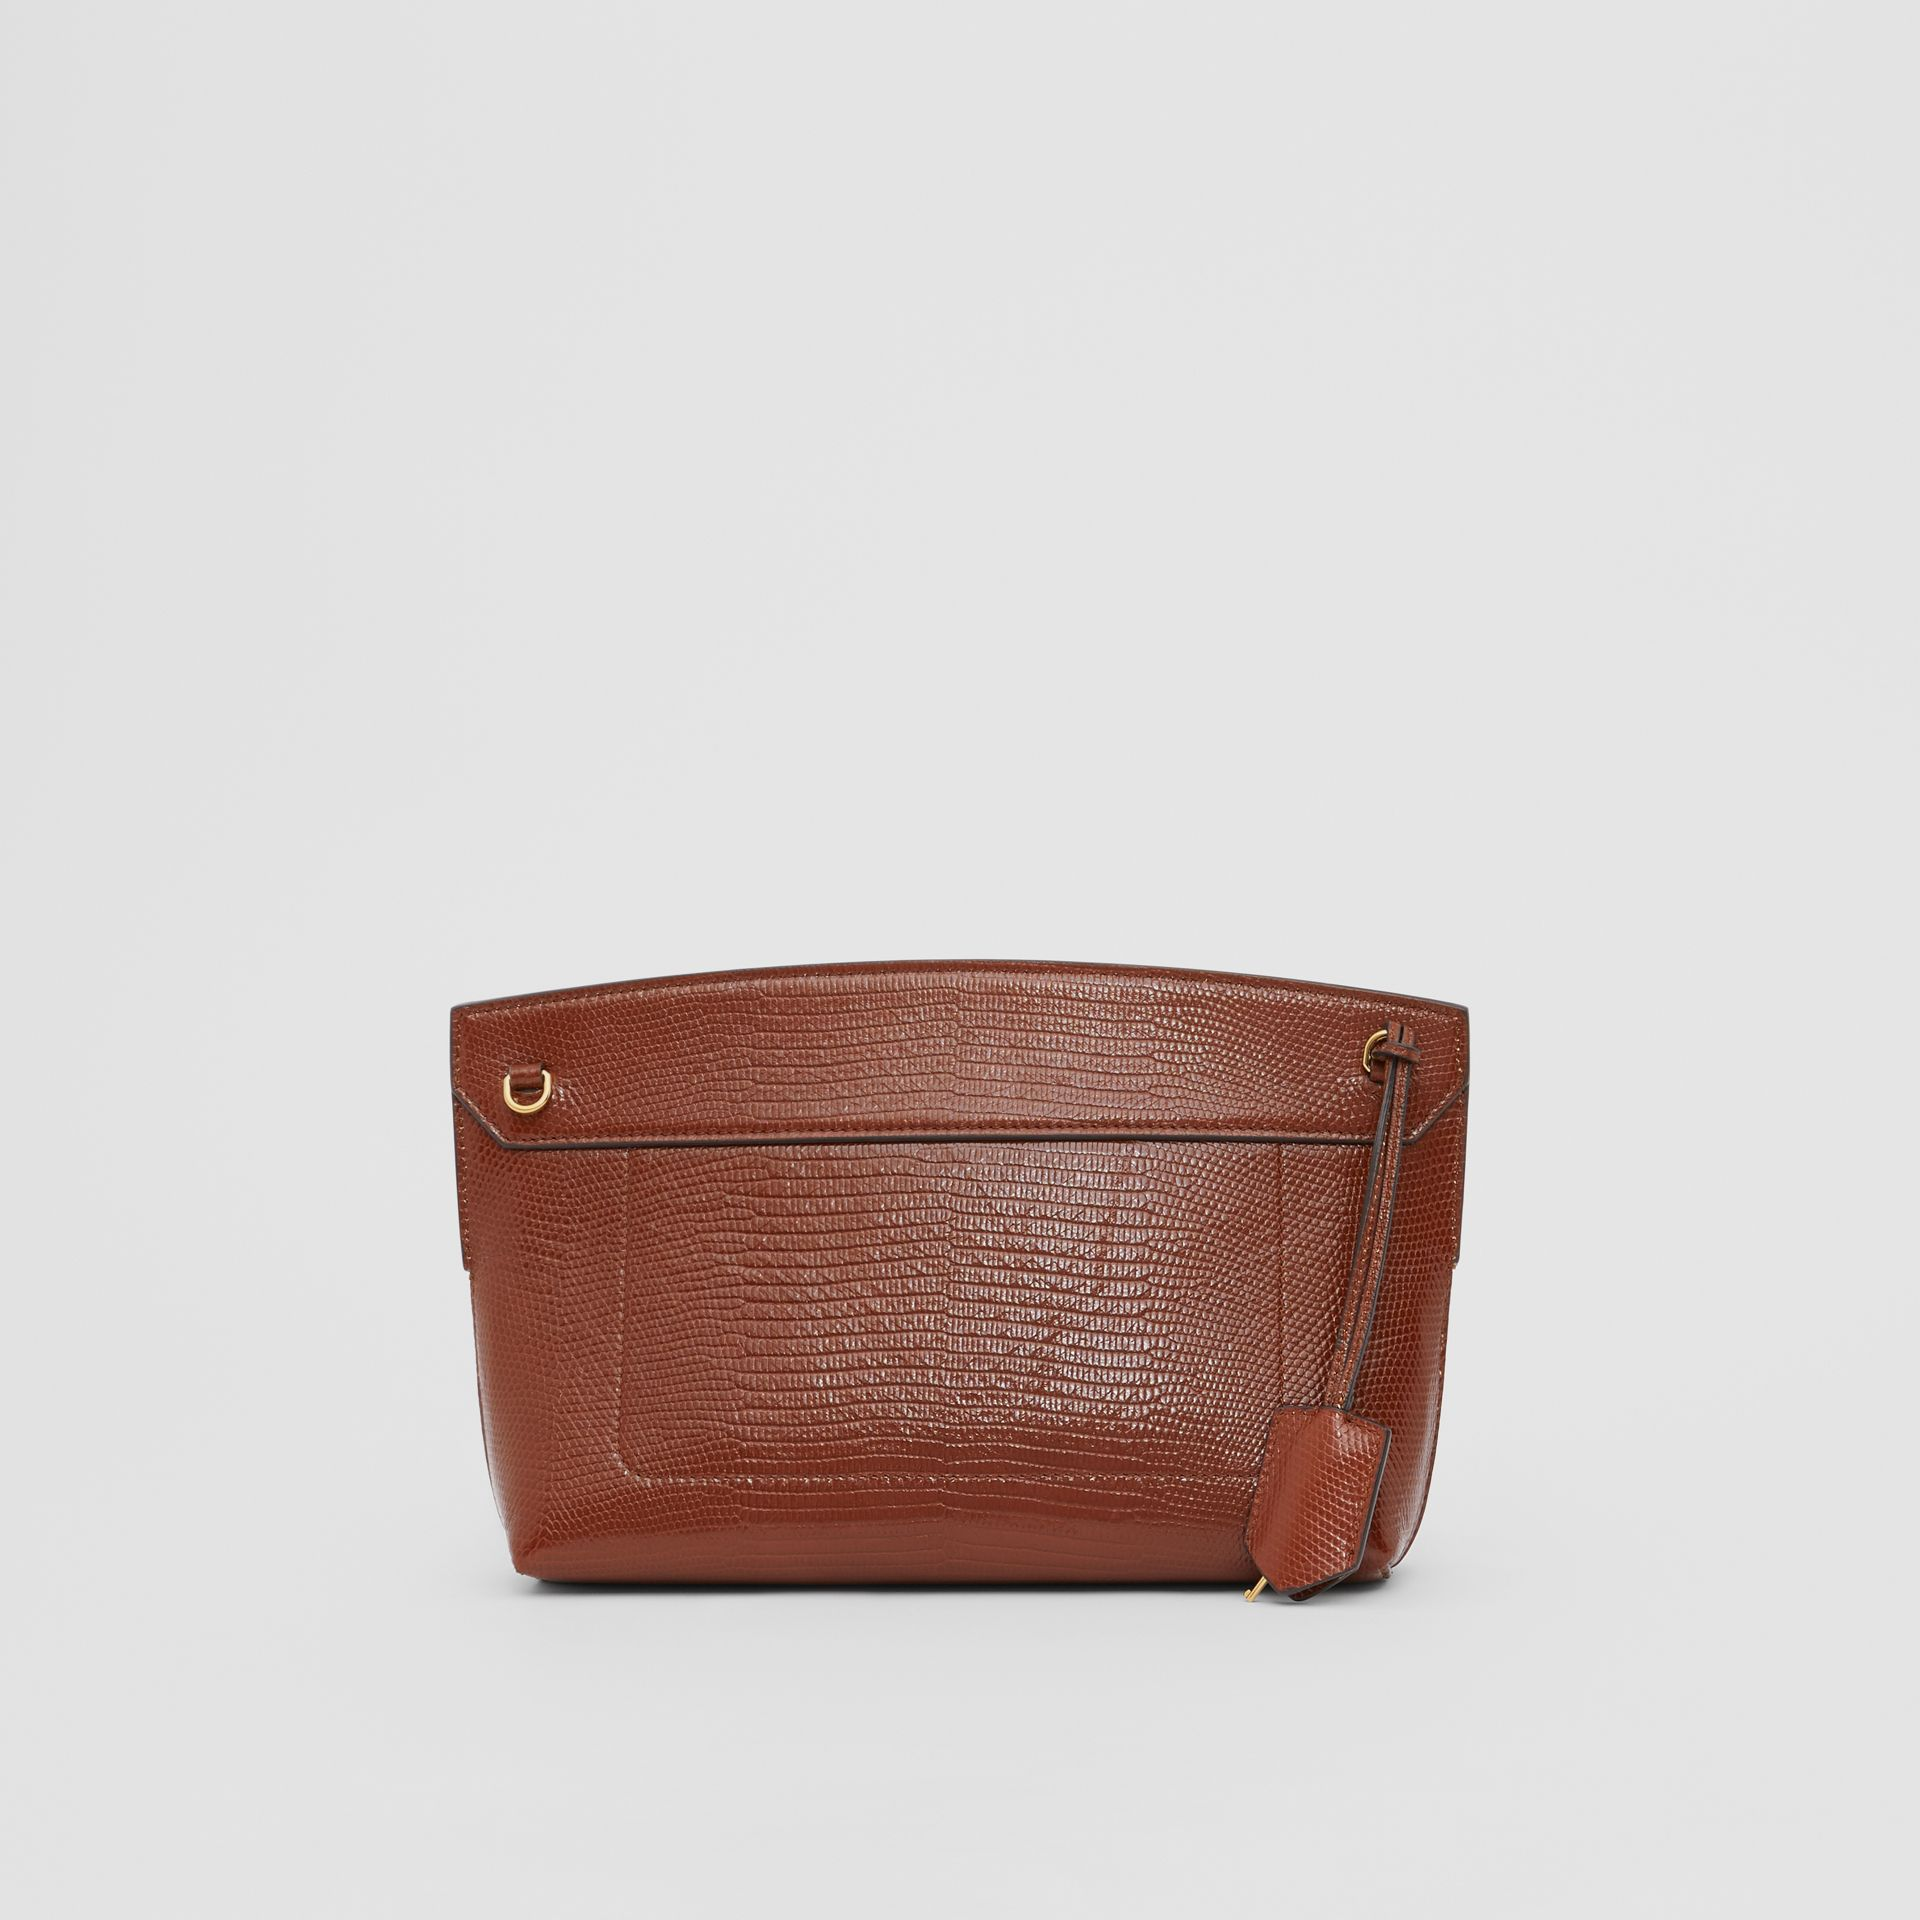 Embossed Deerskin Society Clutch in Tan - Women | Burberry - gallery image 5